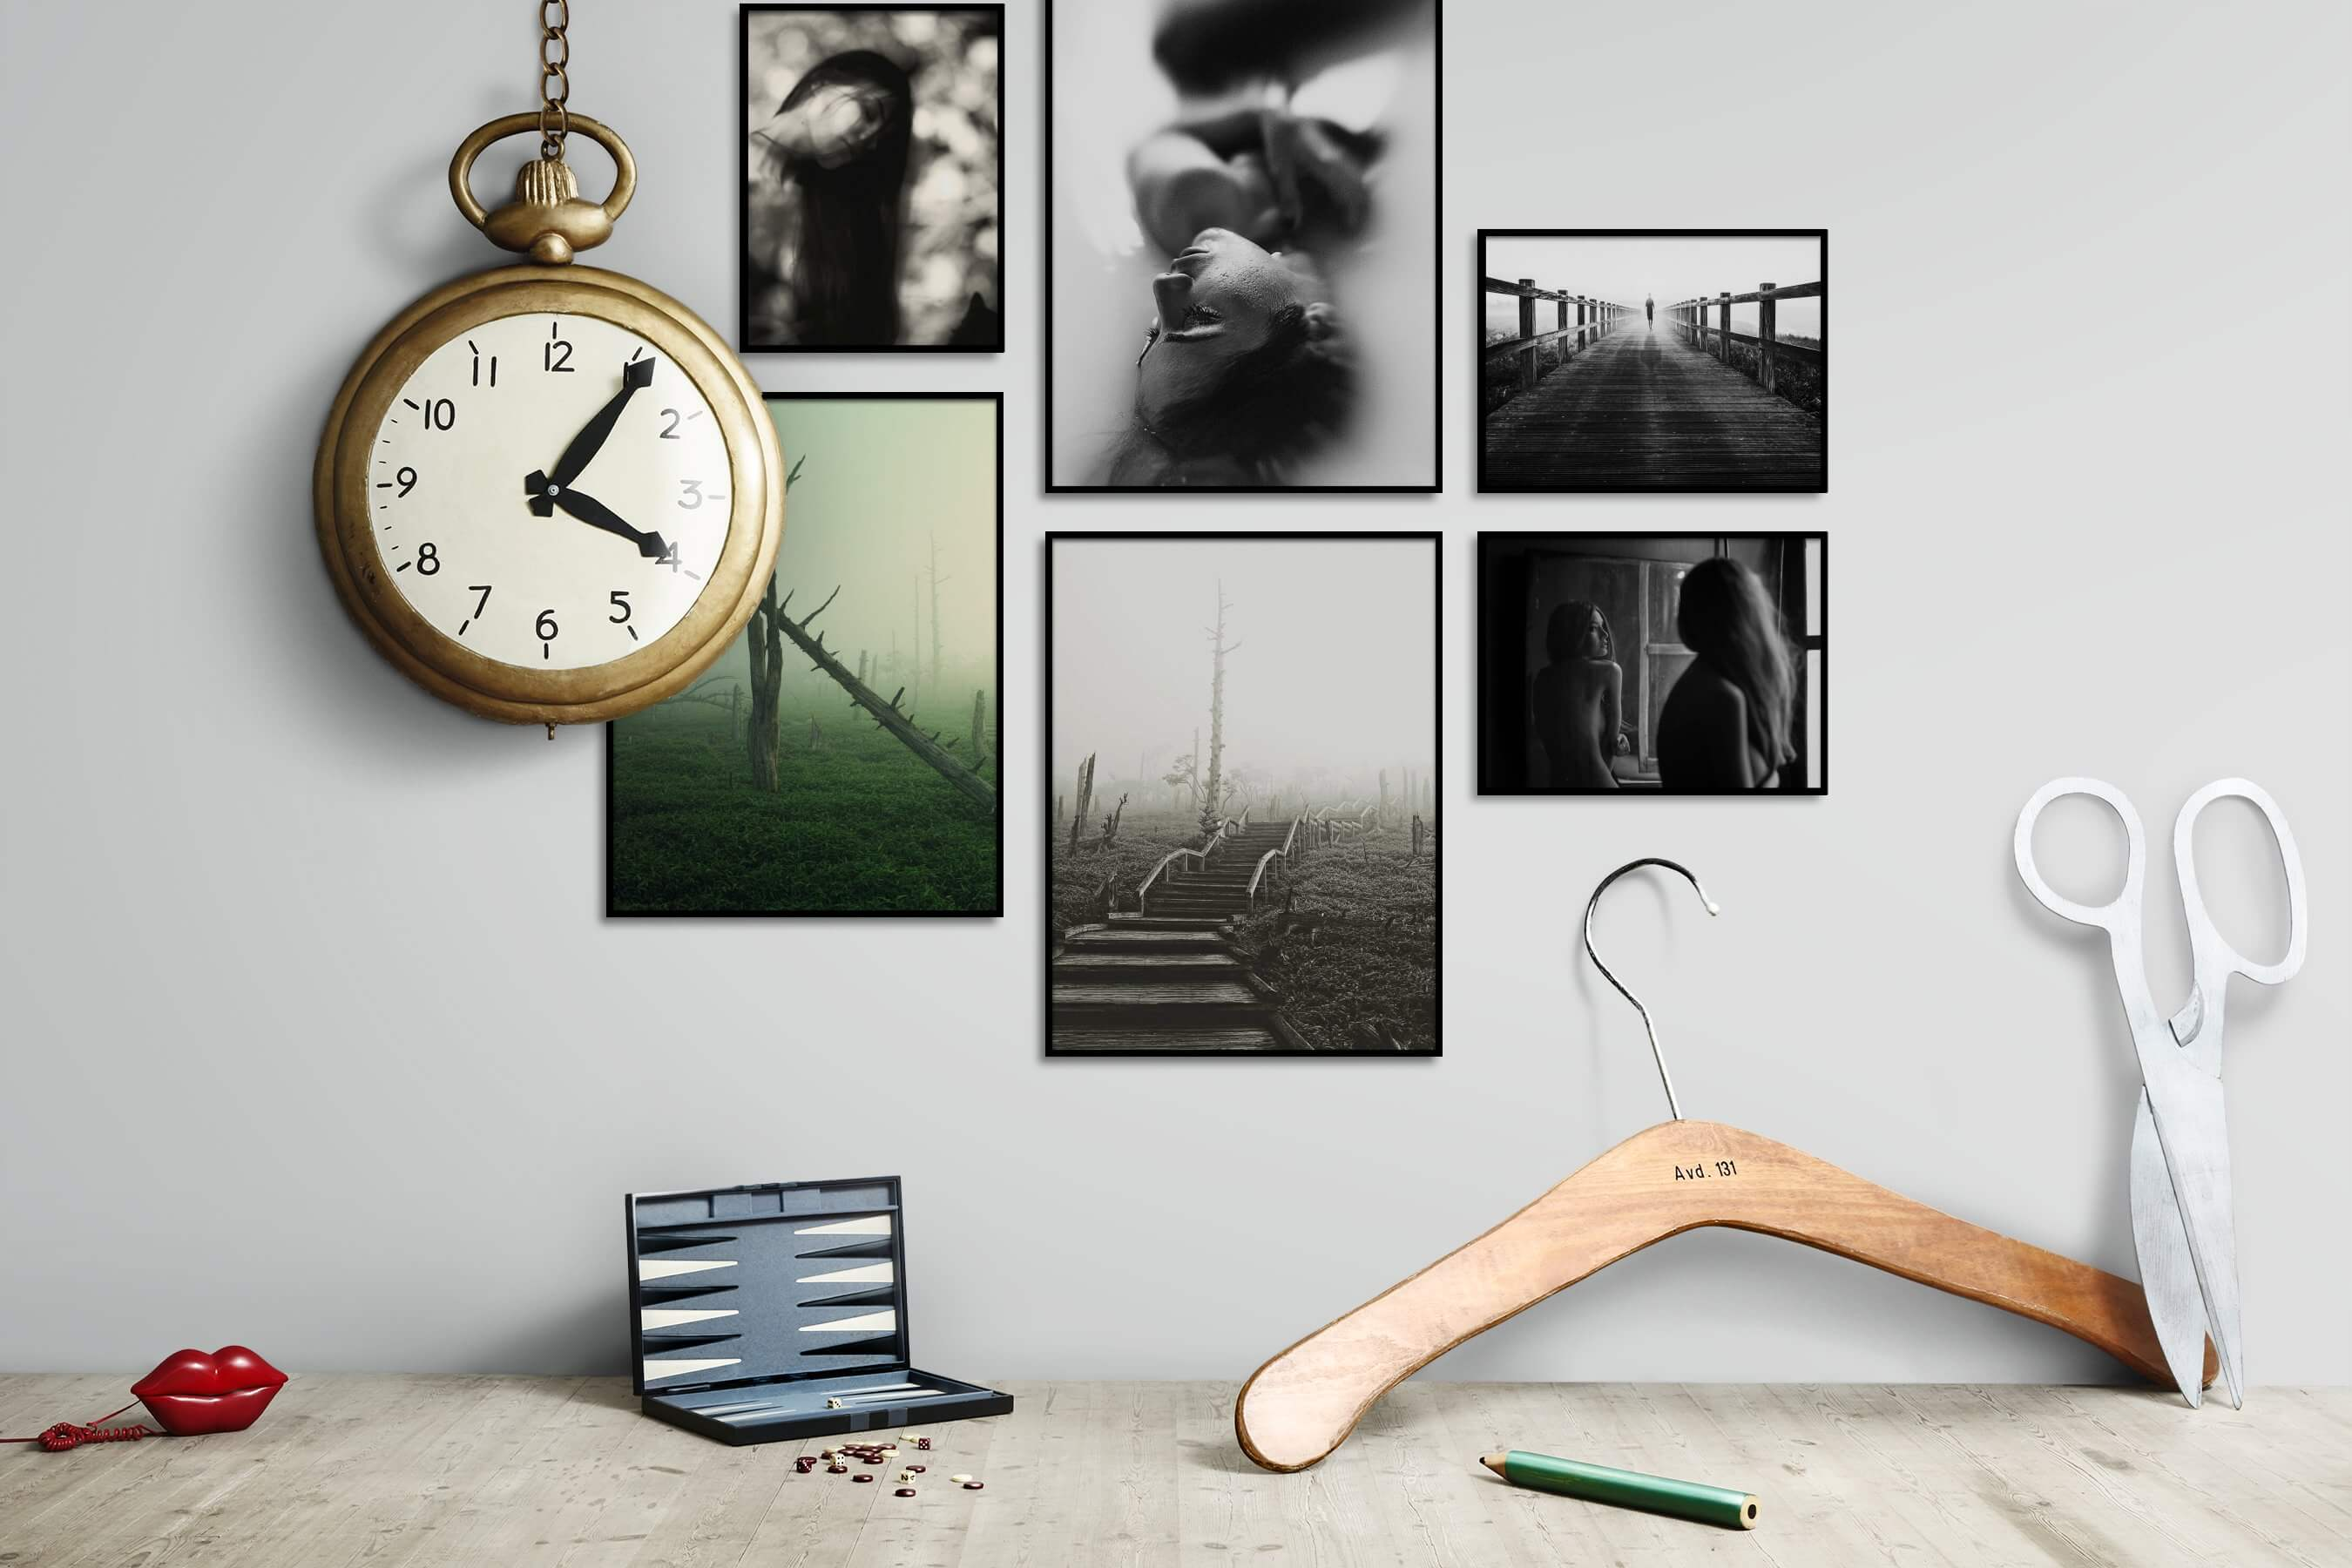 Gallery wall idea with six framed pictures arranged on a wall depicting Fashion & Beauty, Black & White, For the Moderate, Nature, Mindfulness, and Country Life